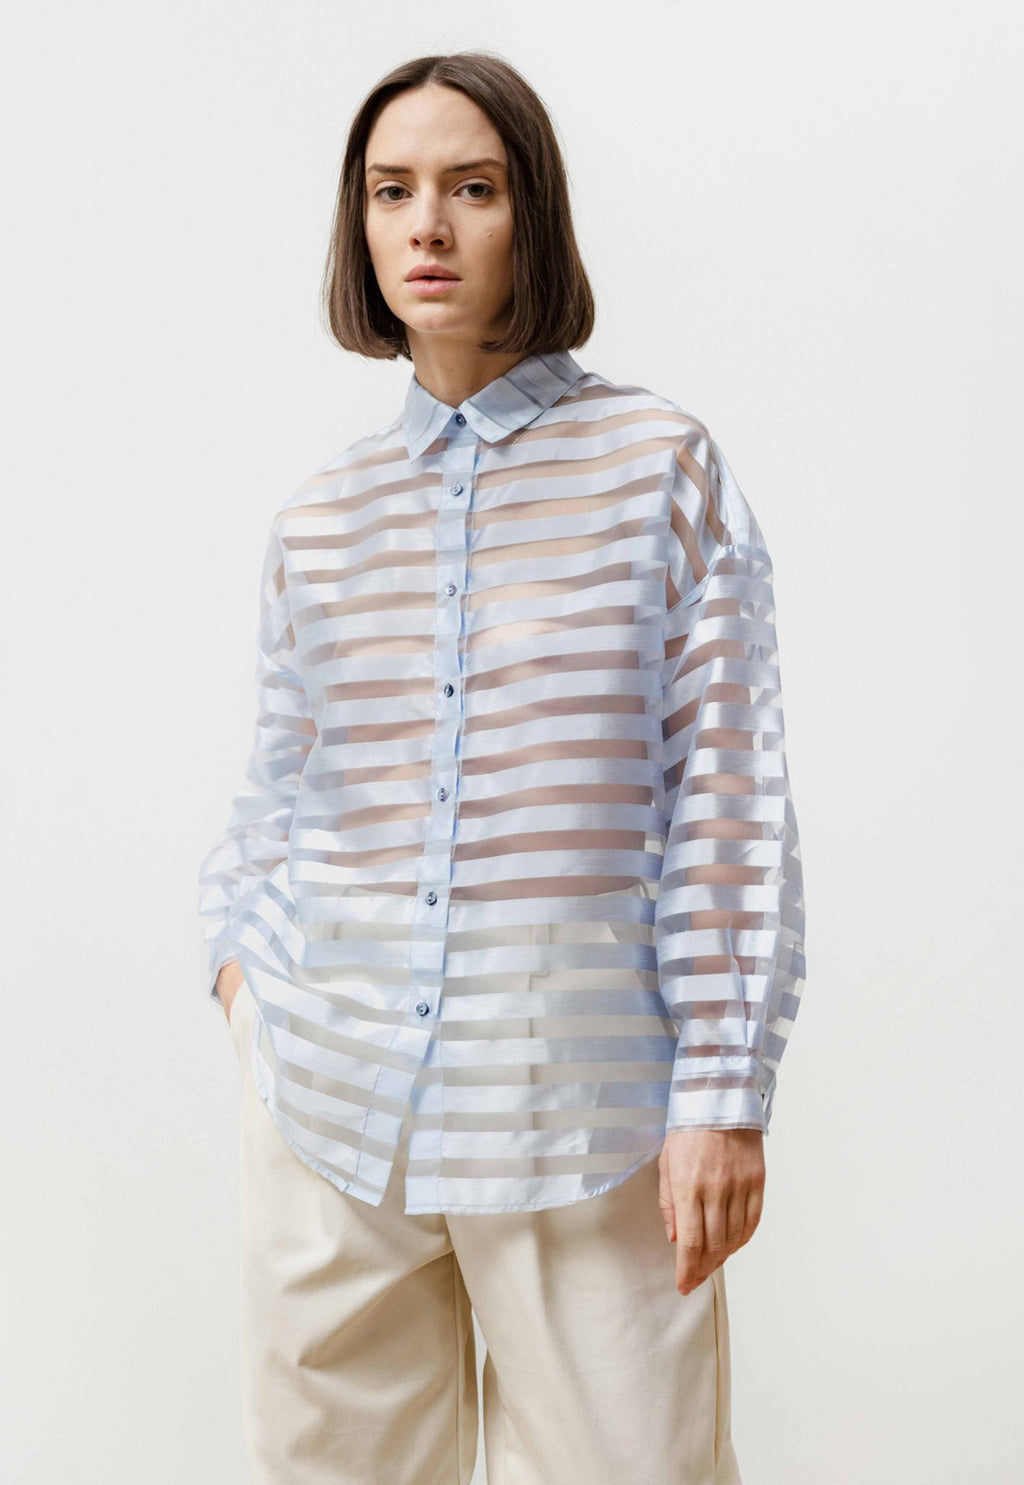 Manga Shirt See Through Stripes Baby Blue